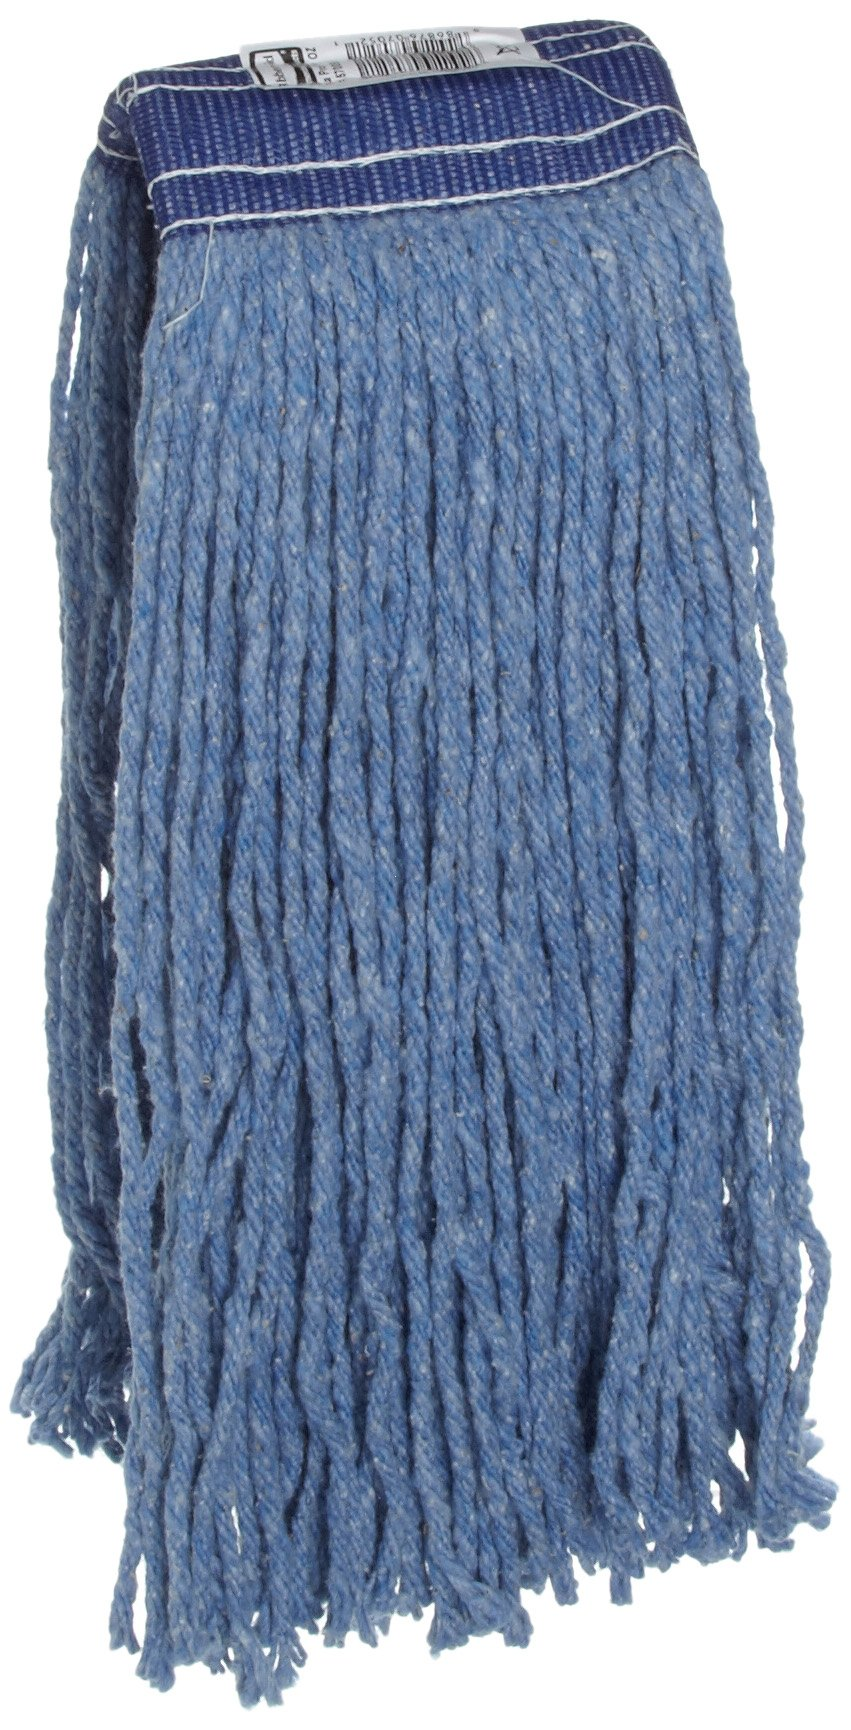 Rubbermaid Commercial Cut End Floor Mops, Blend, Blue, 20-Ounce, 5-Inch Headband, Pack of 12